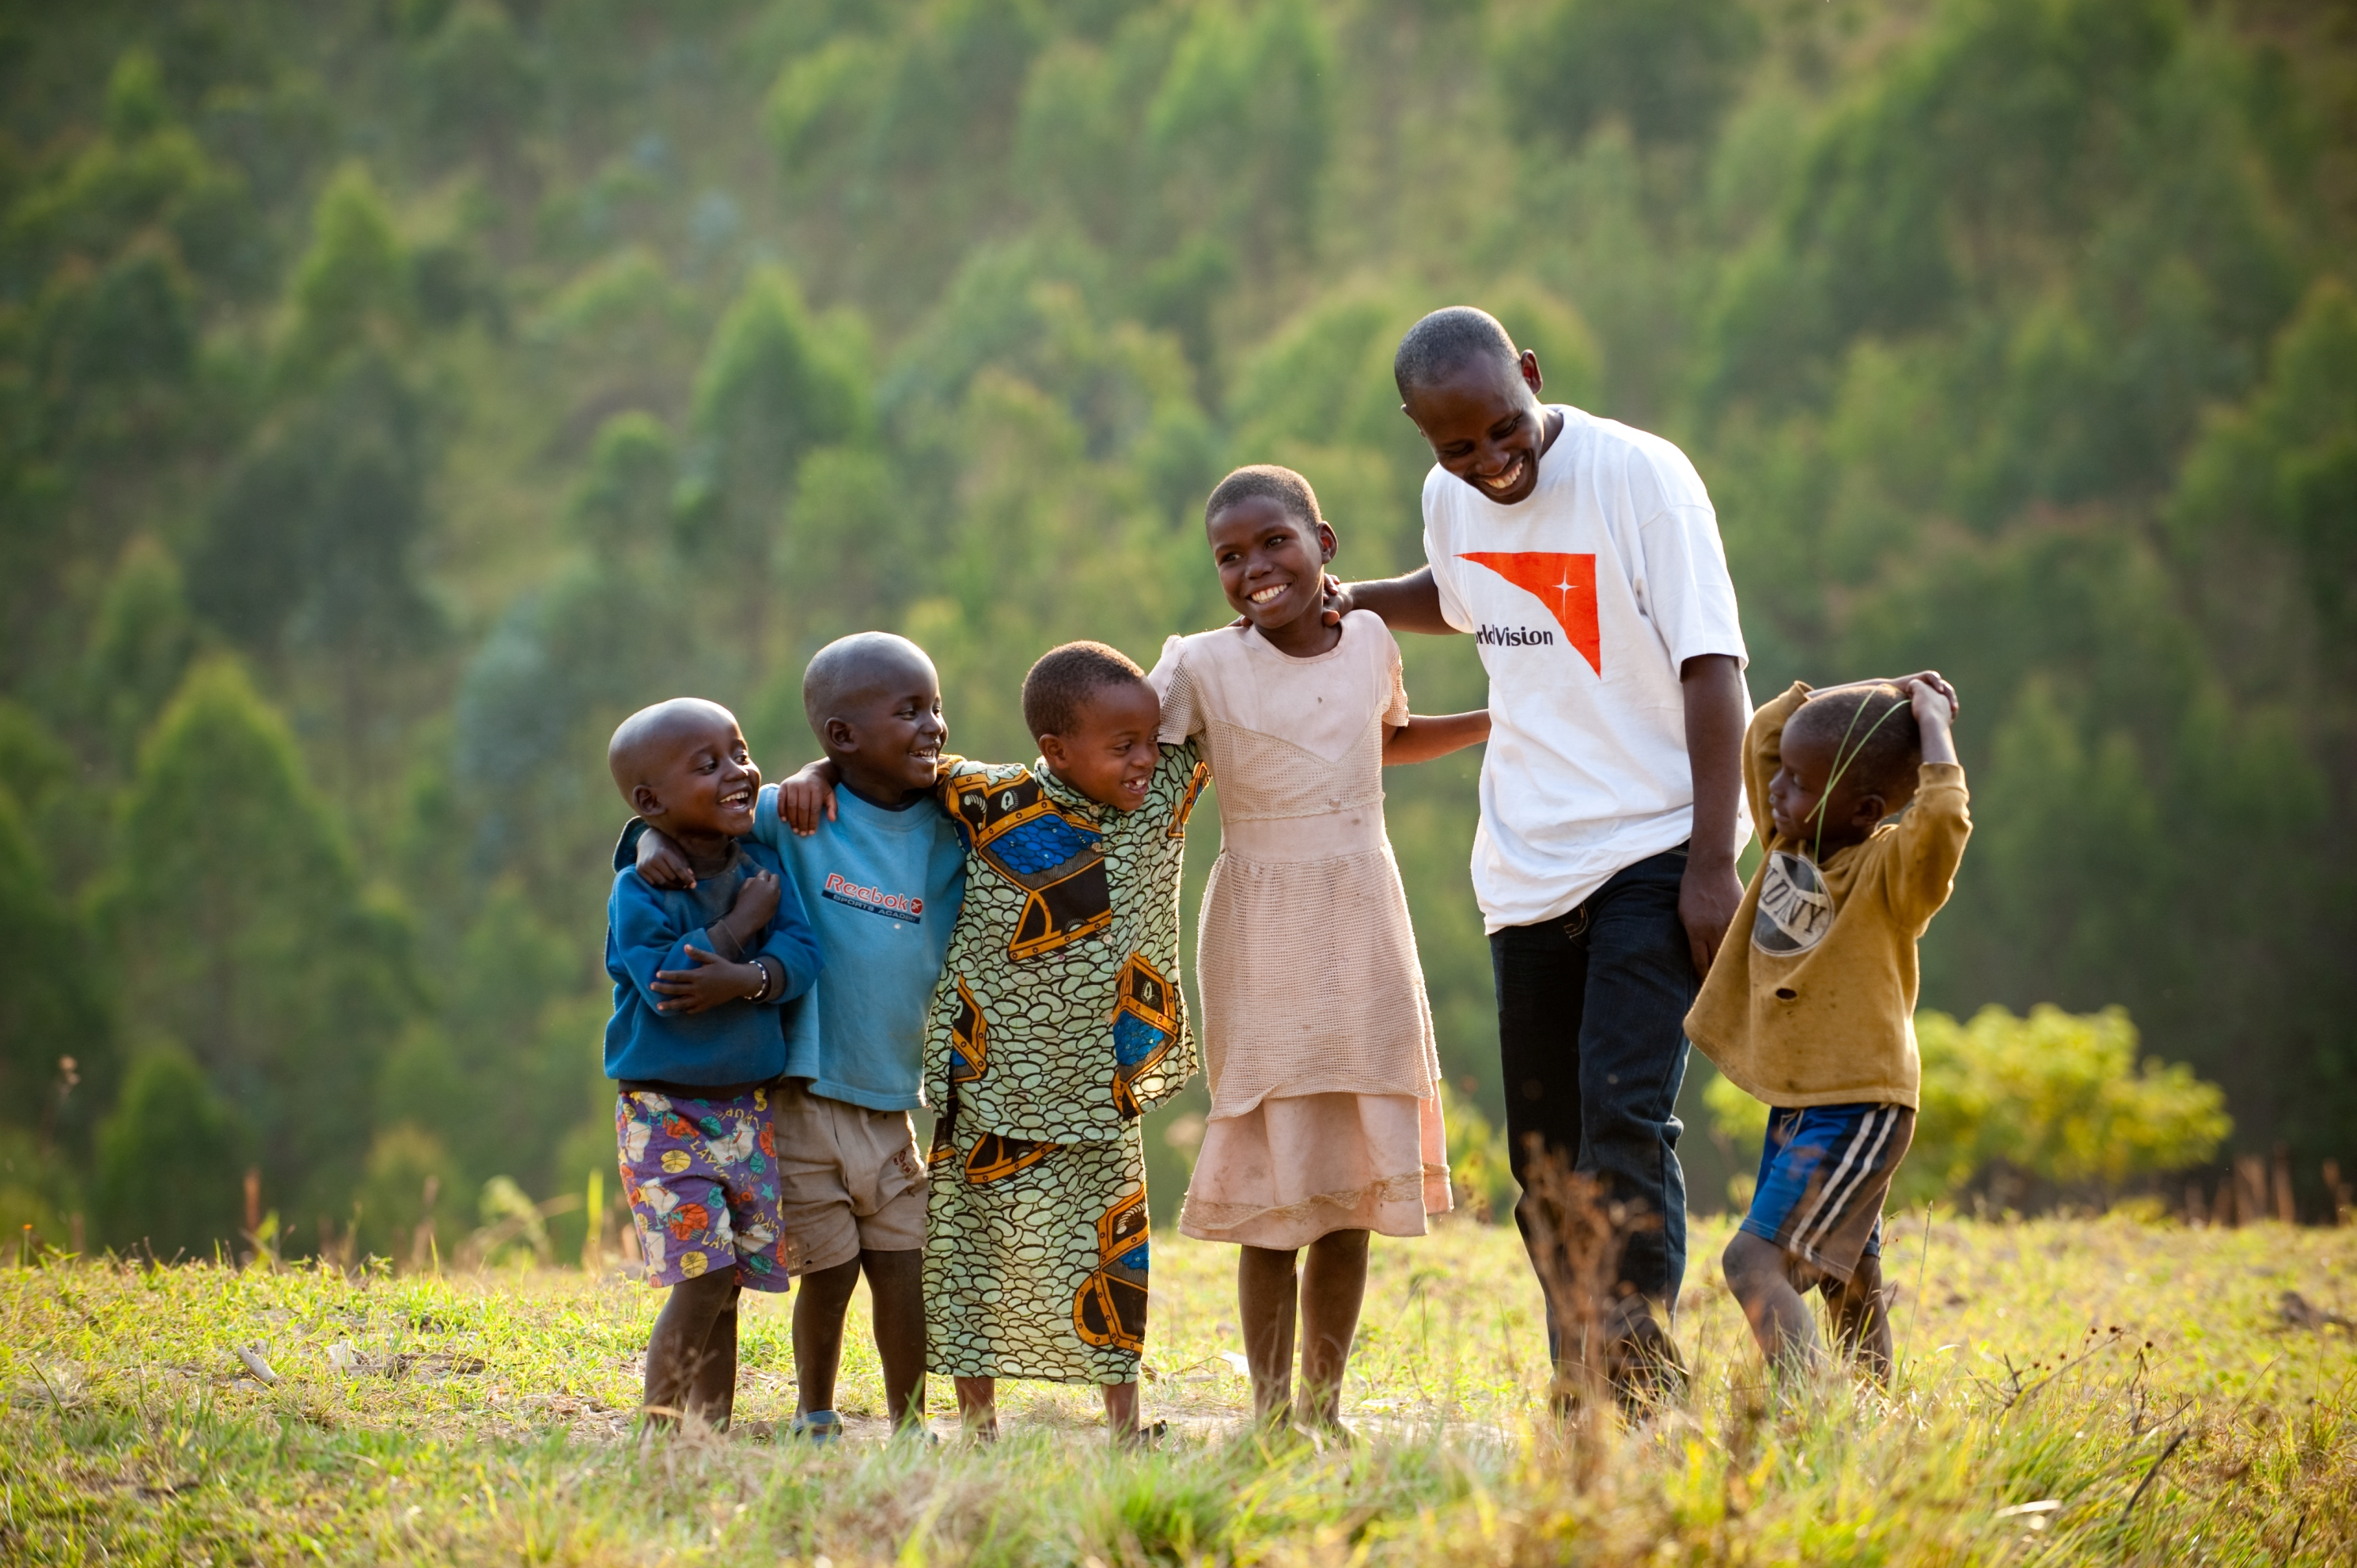 Jean Marie Mugwaneza, 36, World Vision Customer Relations for Nyaruguru ADP, Rwanda, with children in the ADP. He was among the first to register children for sponsorship in the ADP, and continues to live and work in the community.